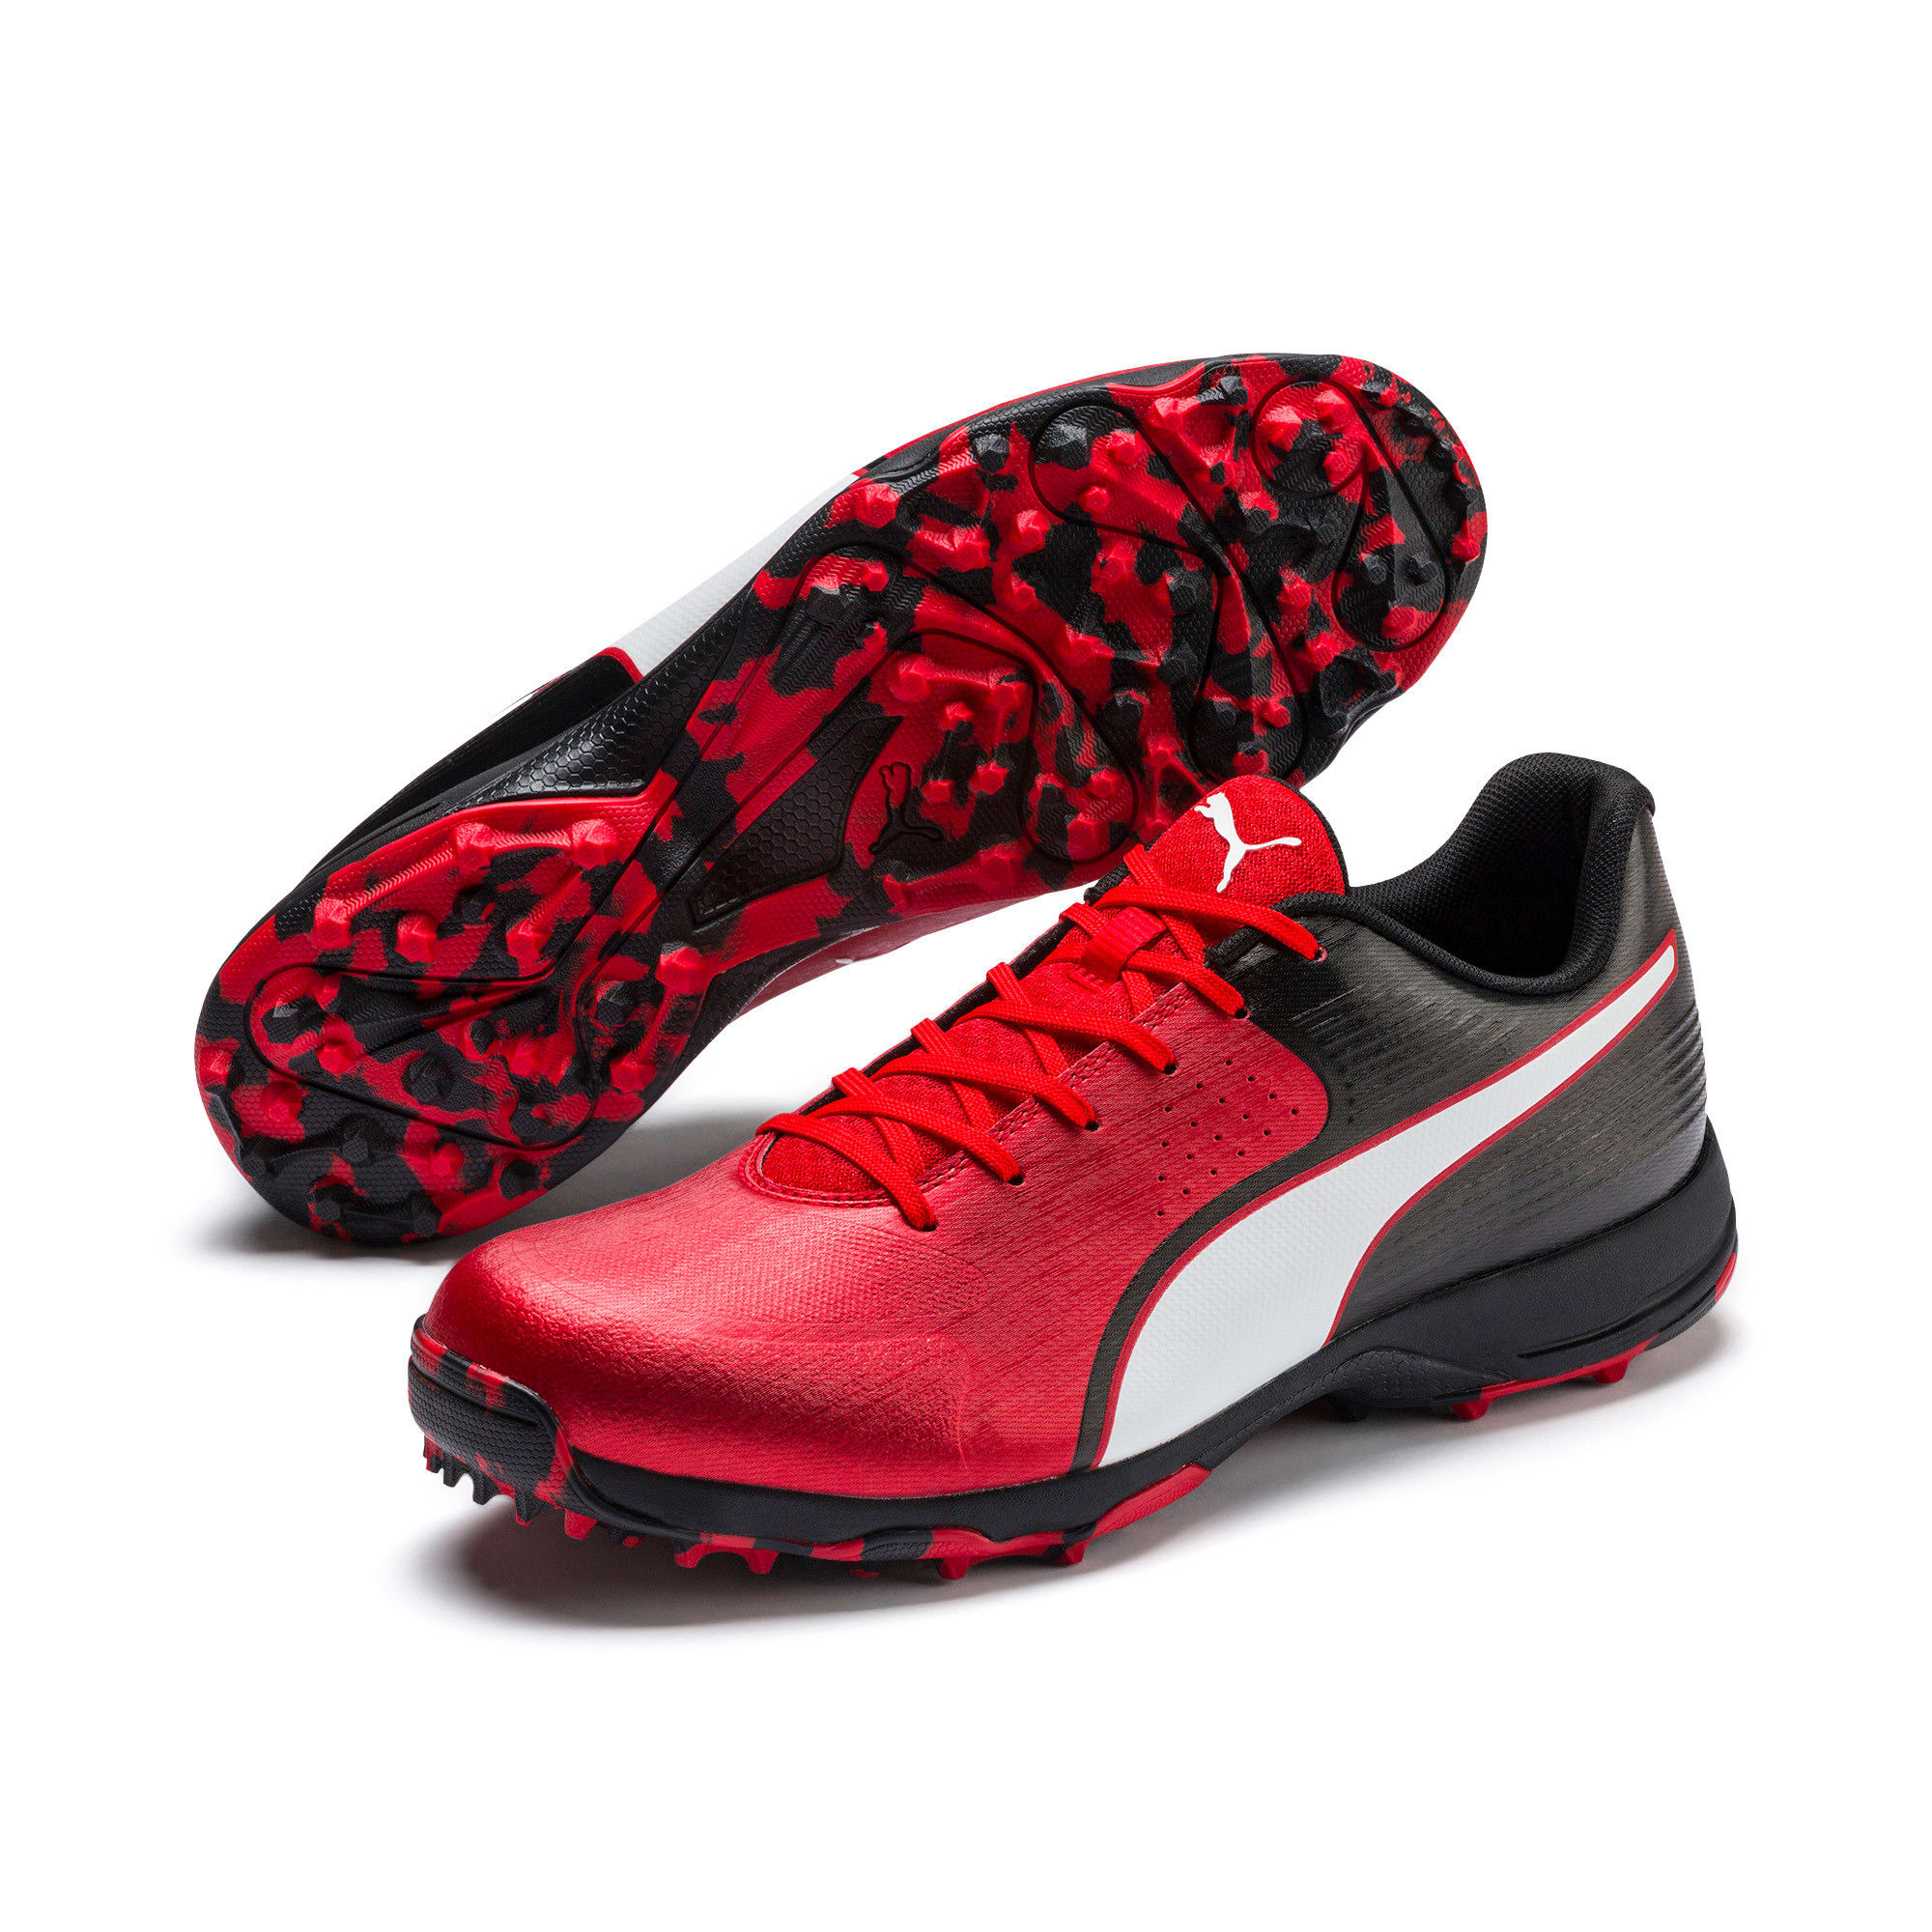 Thumbnail 2 of PUMA 19 FH Rubber Men's Cricket Shoes, High Risk Red-Black-White, medium-IND